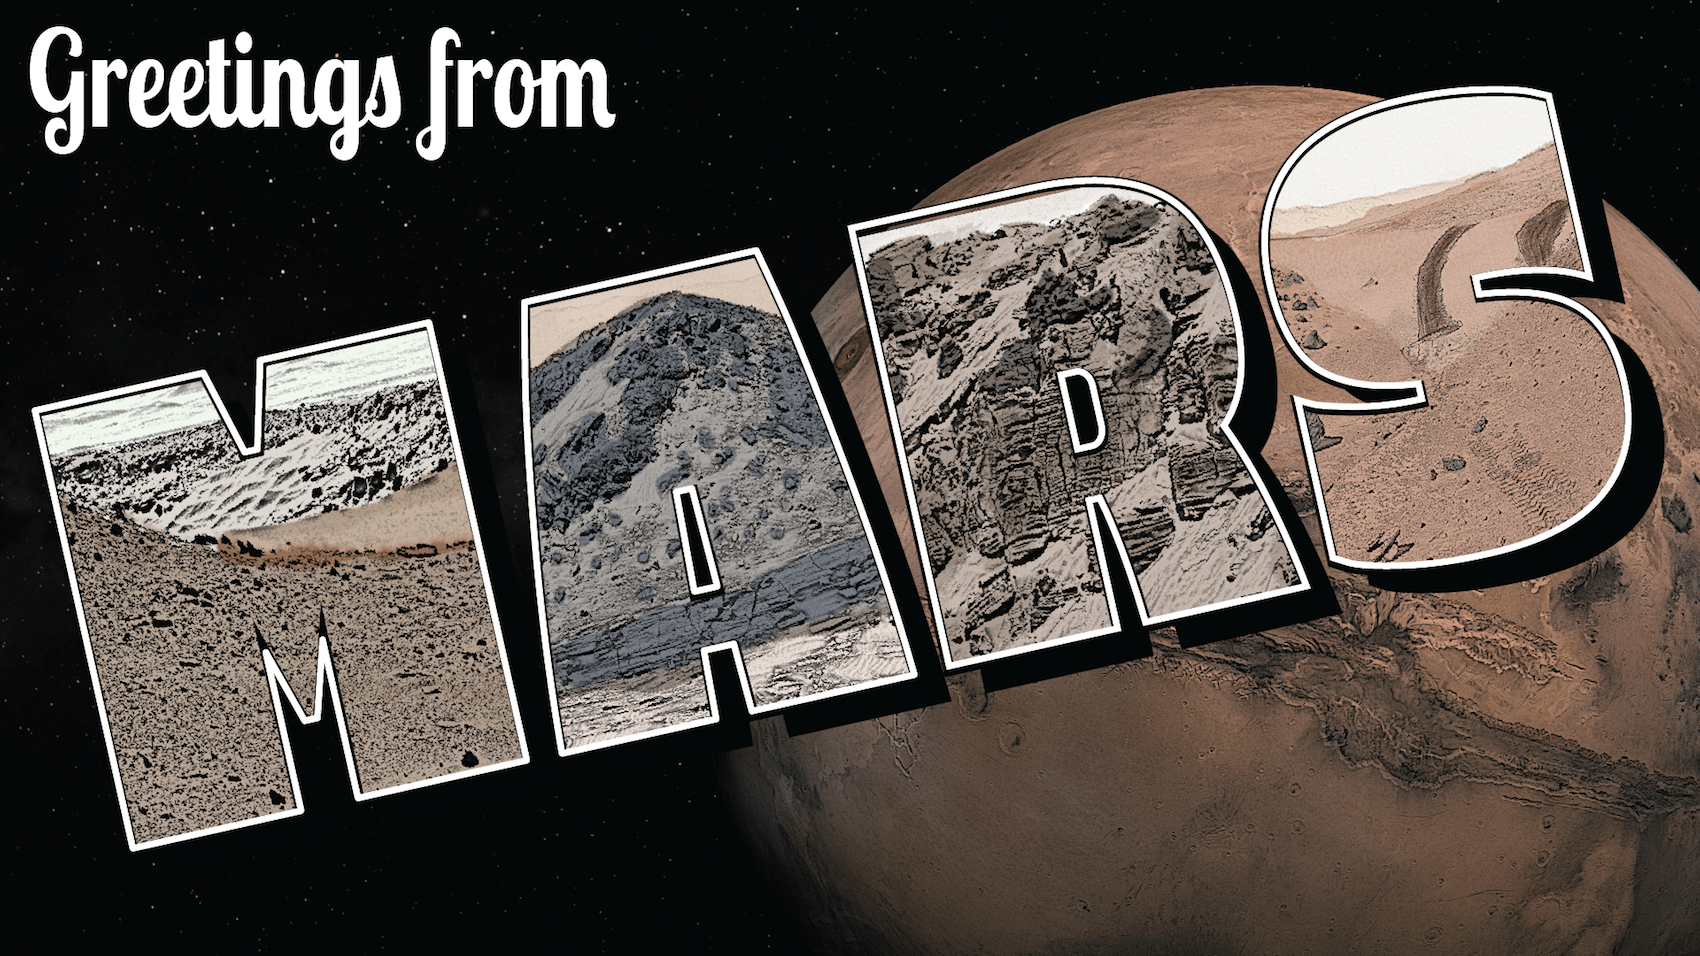 Greetings from mars earth m4hsunfo